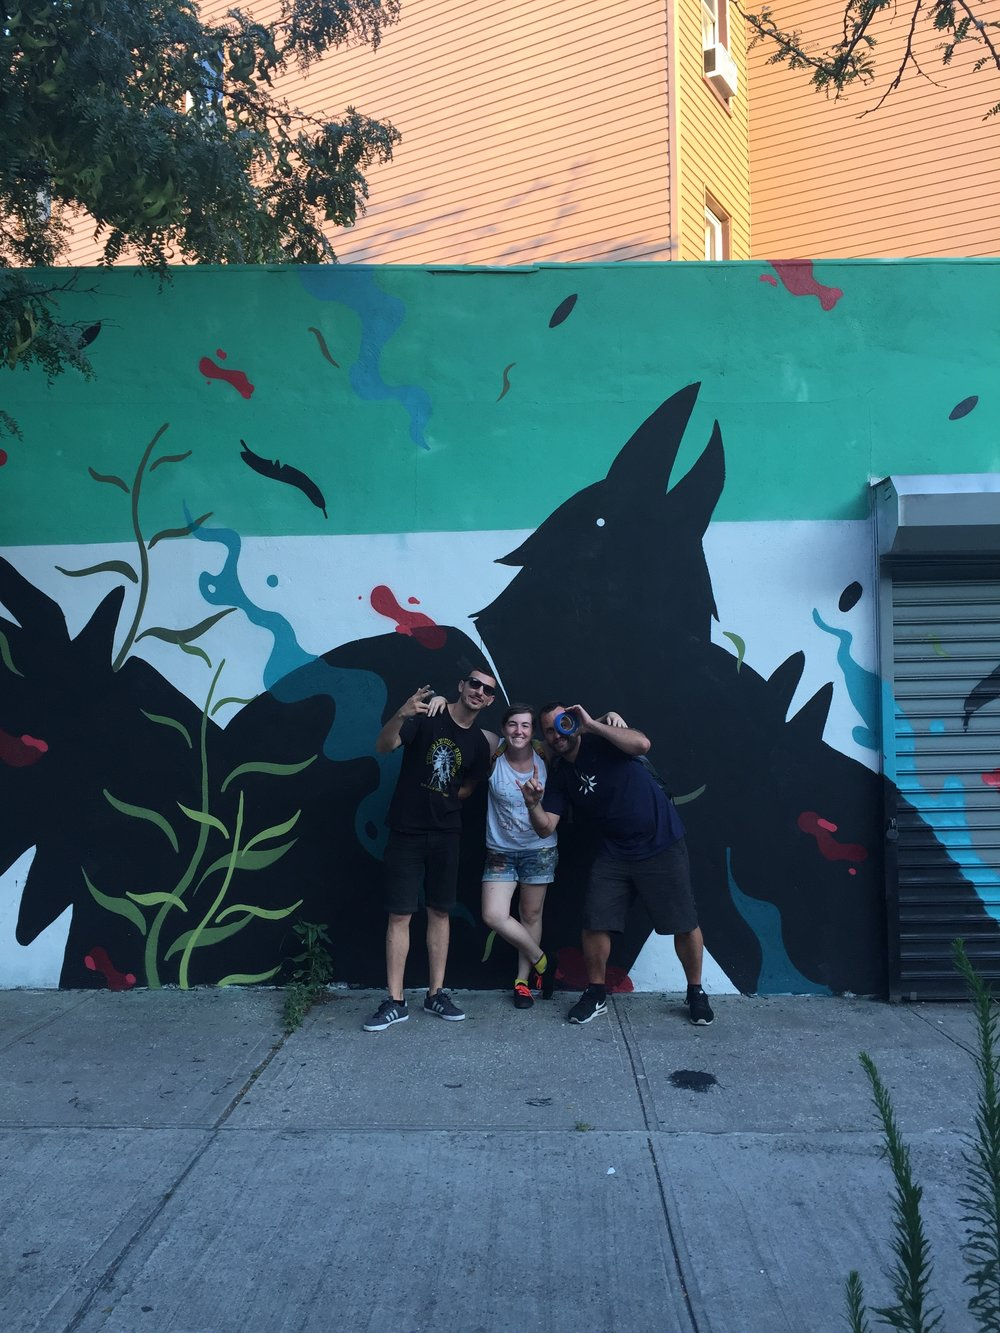 I met them very briefly in Richmond a week before, and they are wrapping up their last mural in the US before returning to Spain. Road Trip Magic!!!